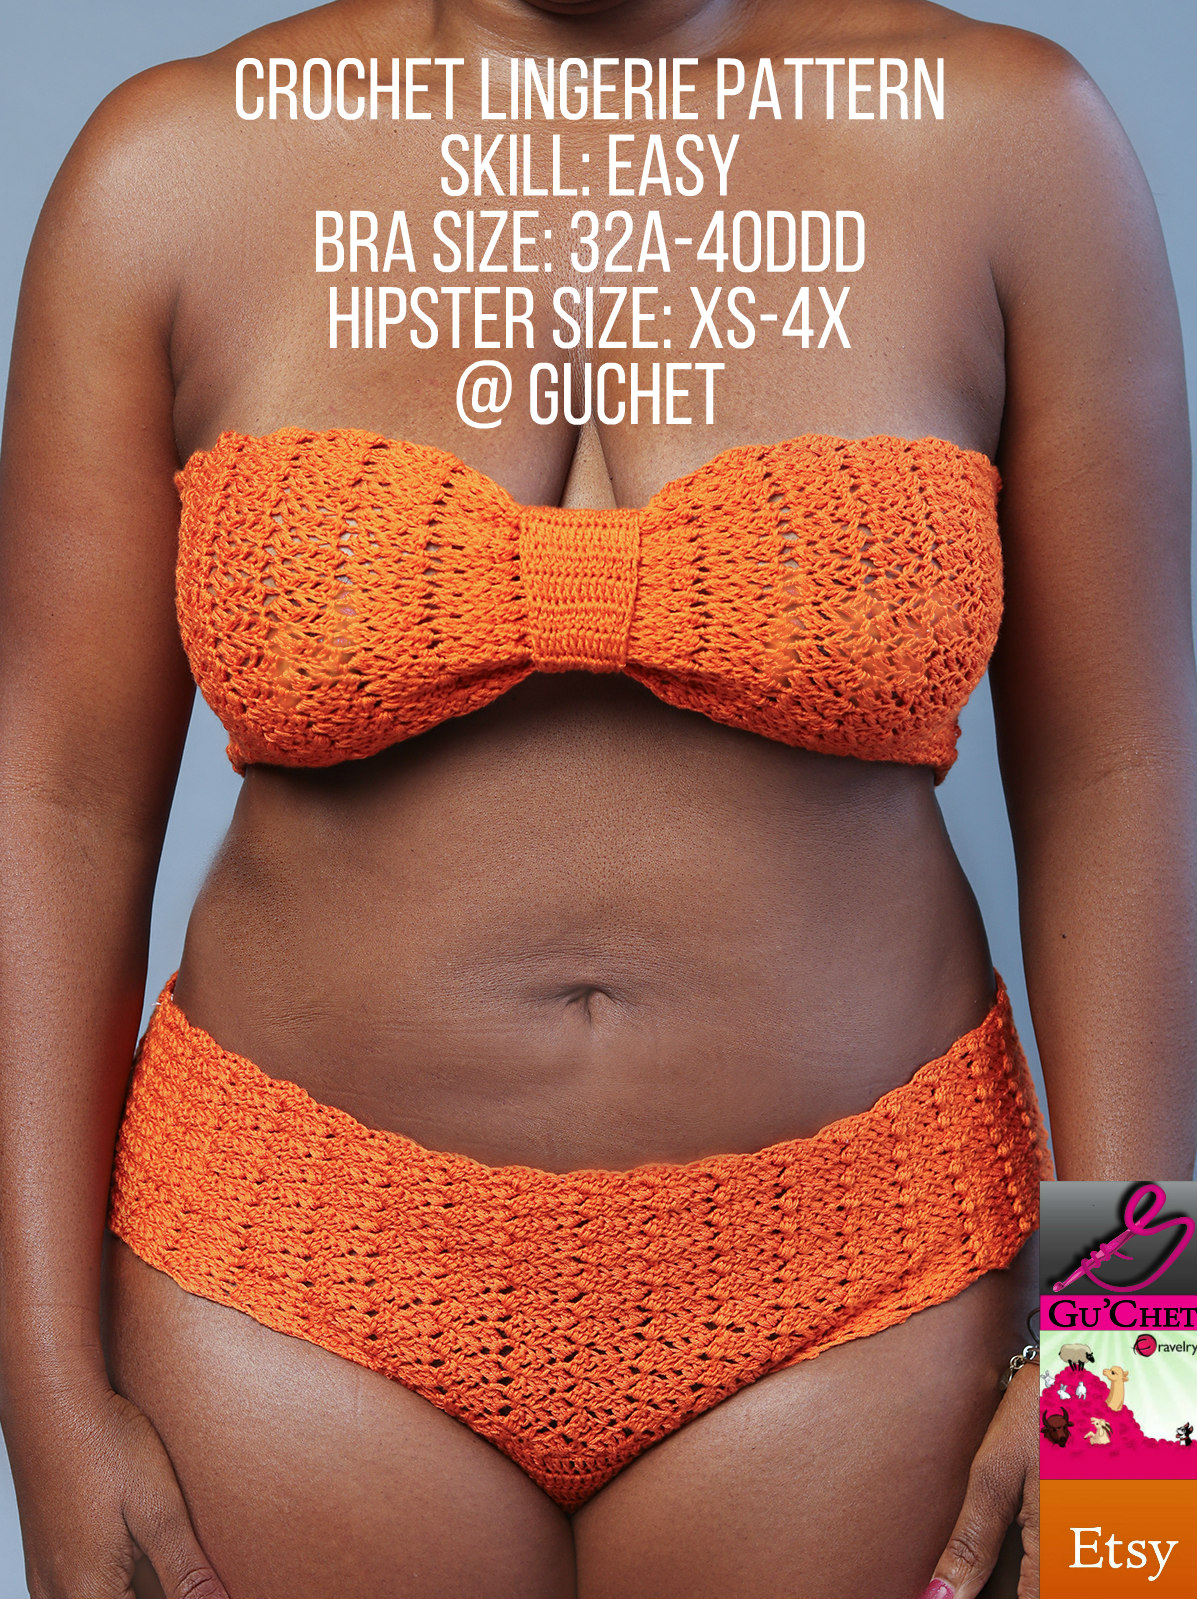 Crochet Lingerie Pattern by GuChet_Bandeau & Hipseter Set Set with tags 3.jpg